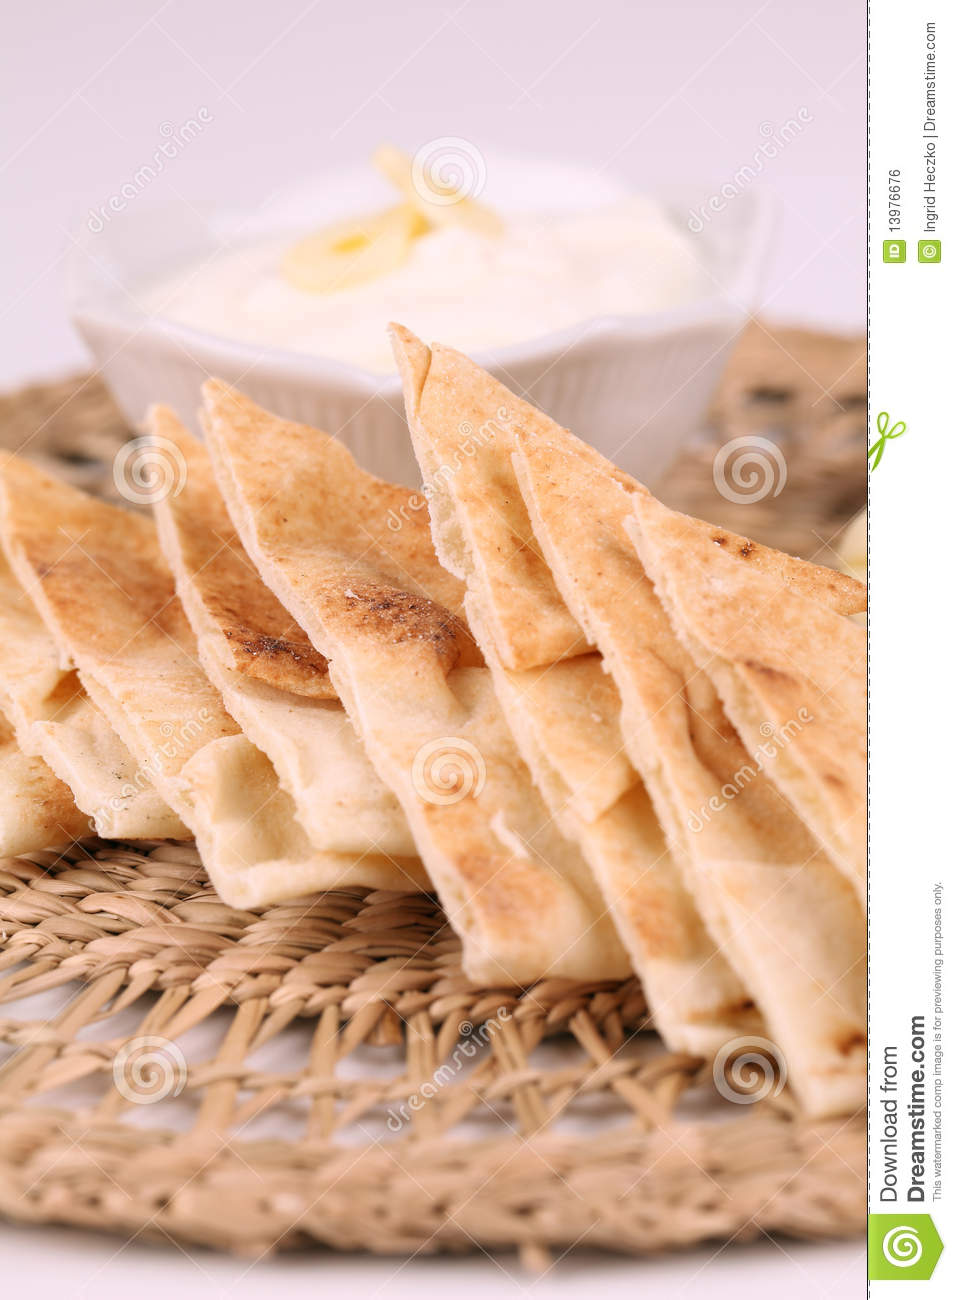 how to serve pita bread with dips